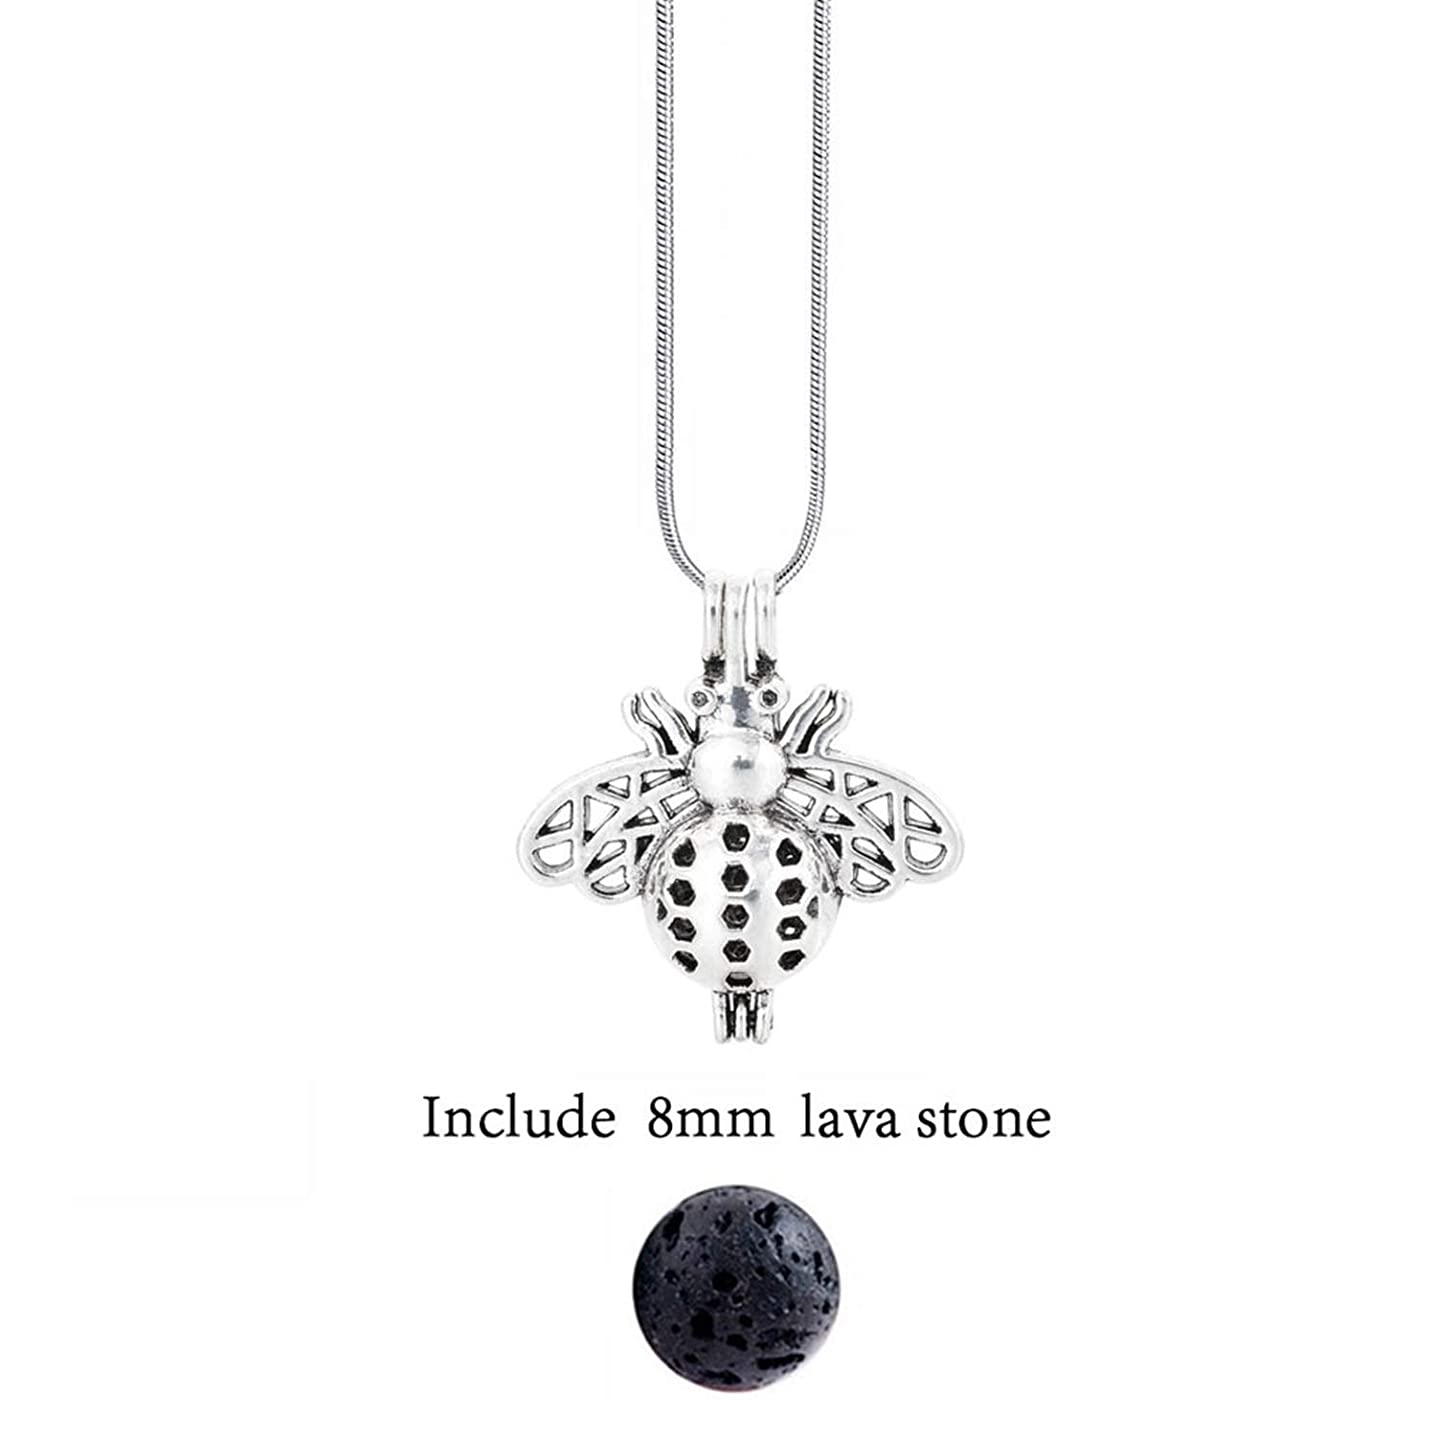 Disinfom Diversified Felt Glow Balls Lava Stone Aromatherapy Antique Vintage Necklaces Locket Perfume Essential Oil Diffuser Necklace